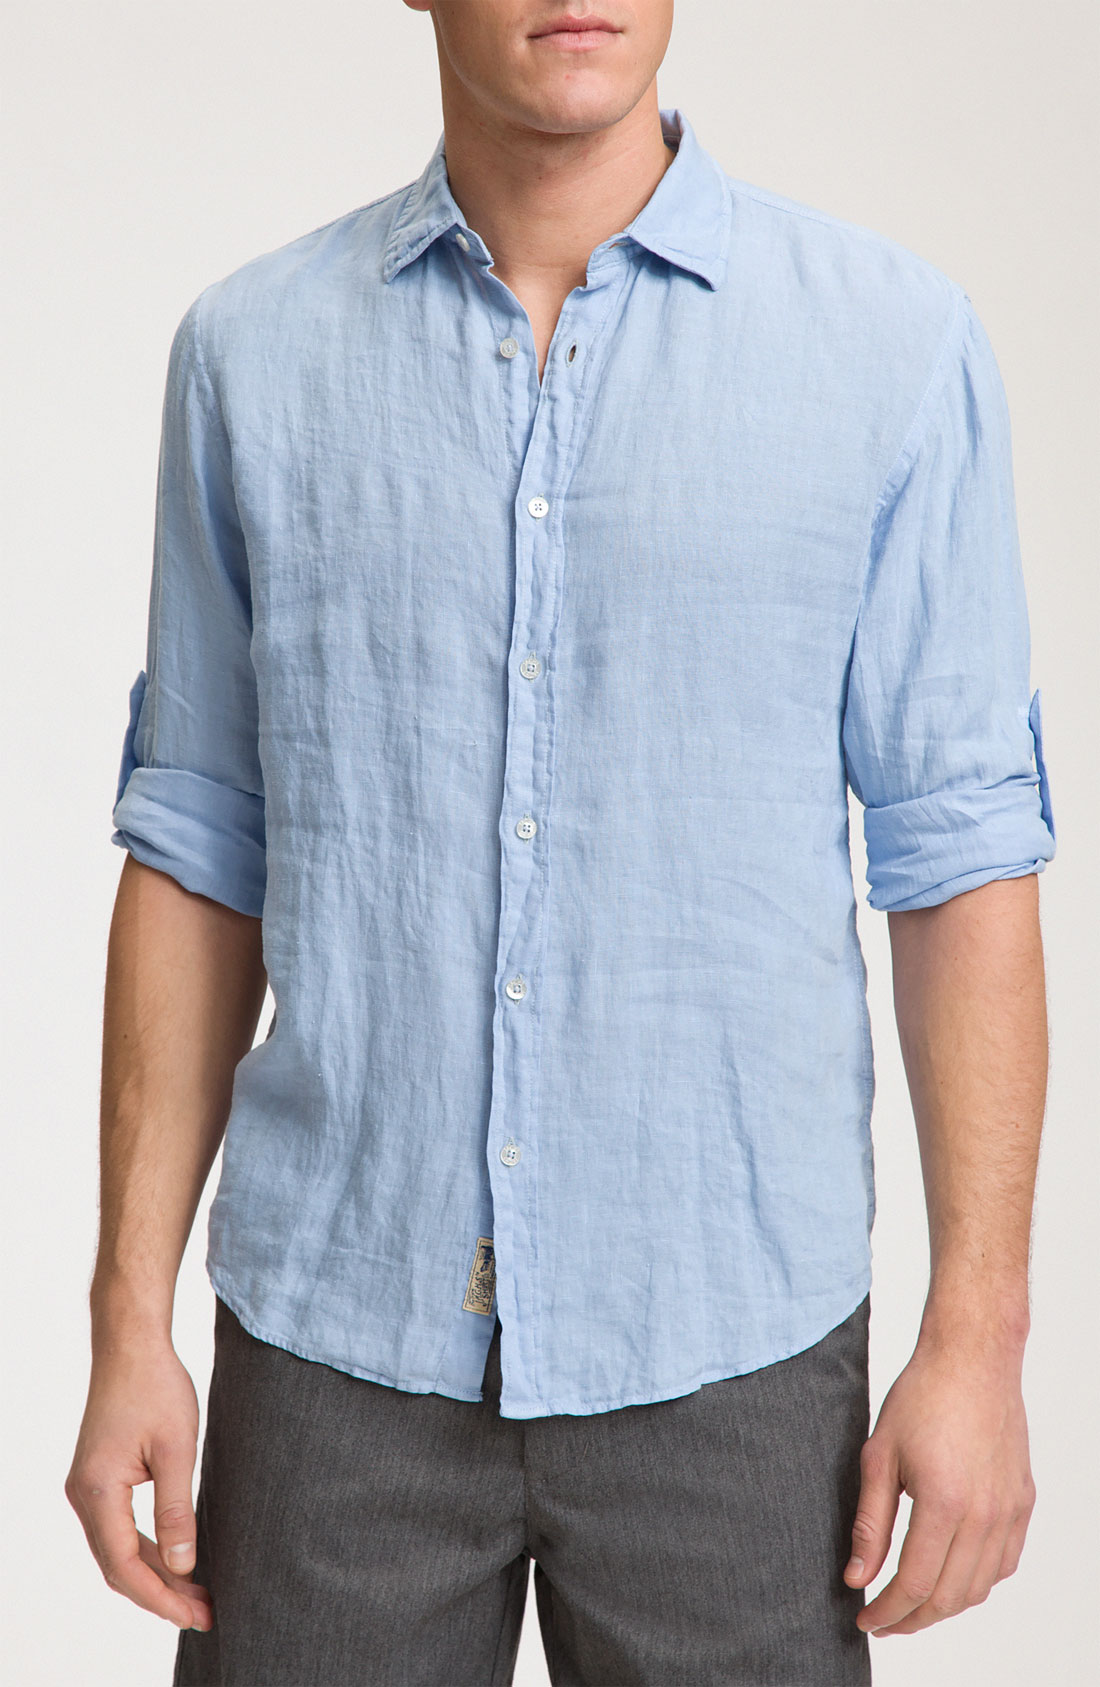 Men's Long Sleeve Linen Shirt, with roll up Sleeves. from $ 24 out of 5 stars RALPH LAUREN. Mens Button Up Long Sleeve Linen Shirt. from $ 40 81 Prime. out of 5 stars 3. EastLife. Mens Cotton Linen Shirts Botton up Summer Casual Long Sleeve Tops. from $ 9 99 Prime. 5 out of 5 stars 1. Cubavera.